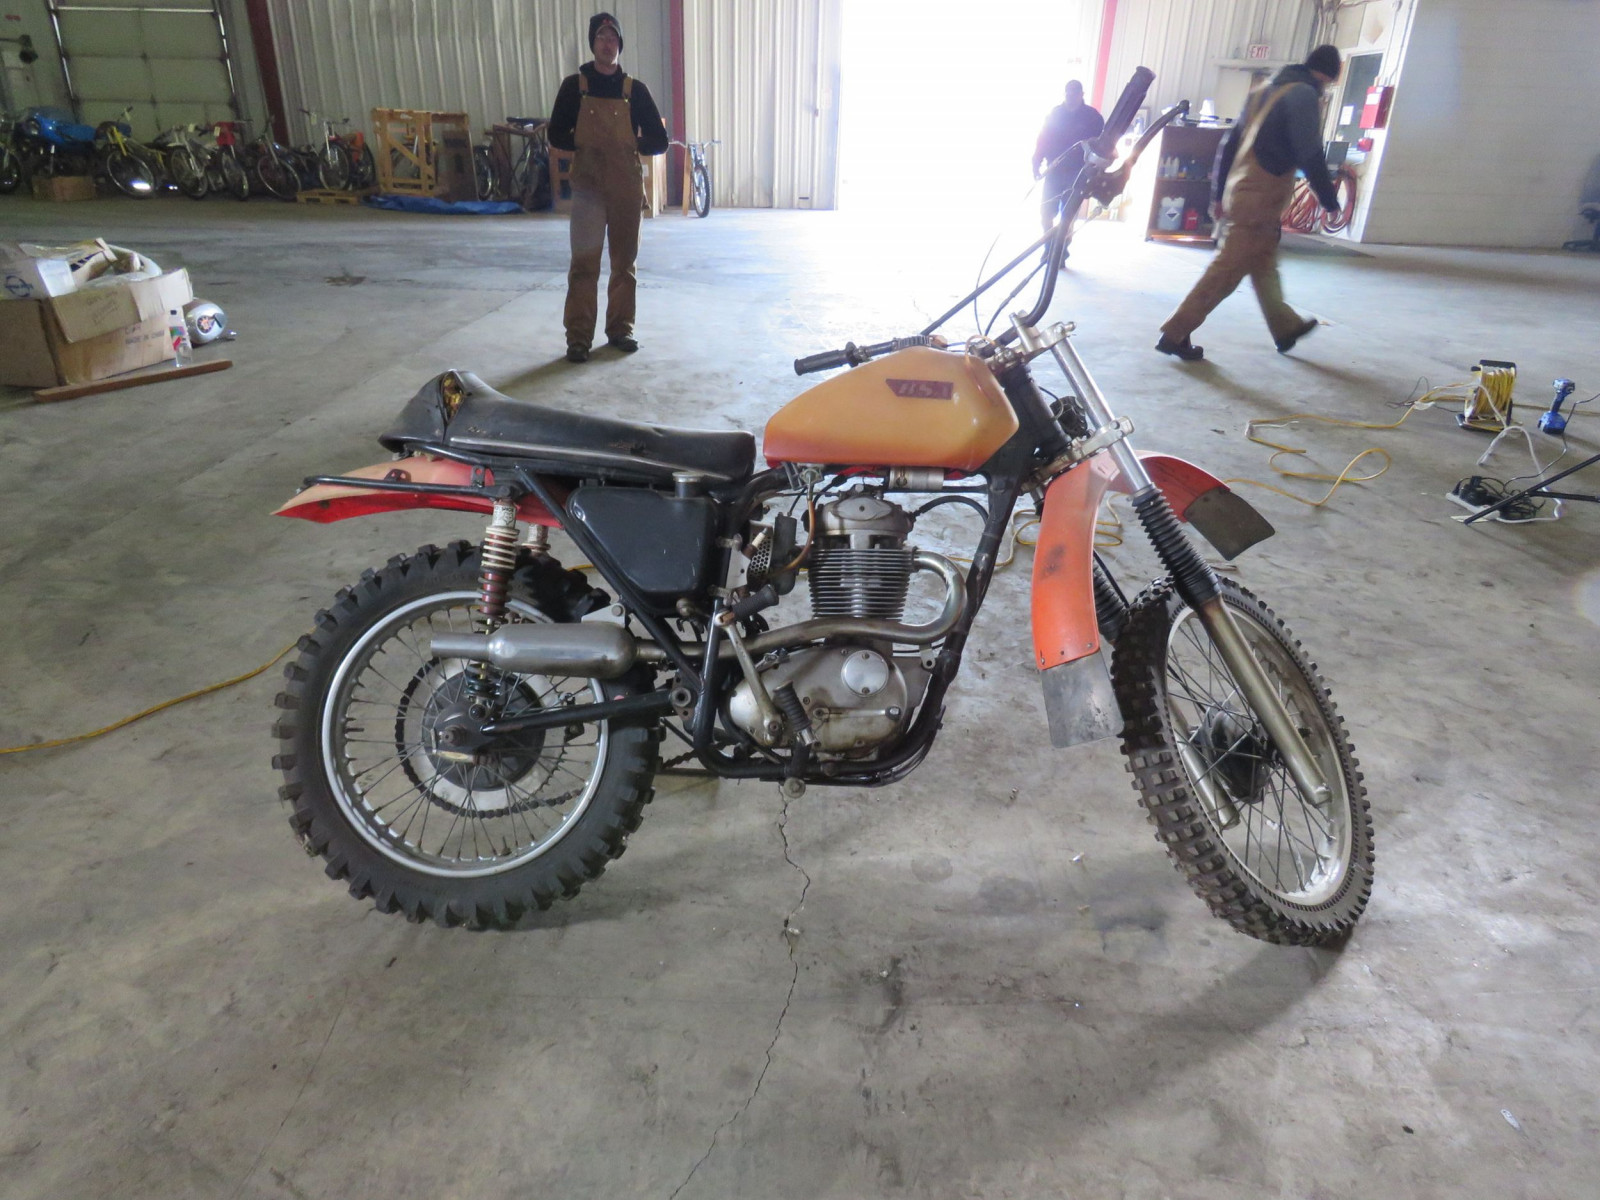 1968 BSA B44 Victor Special Motorcycle - Image 2